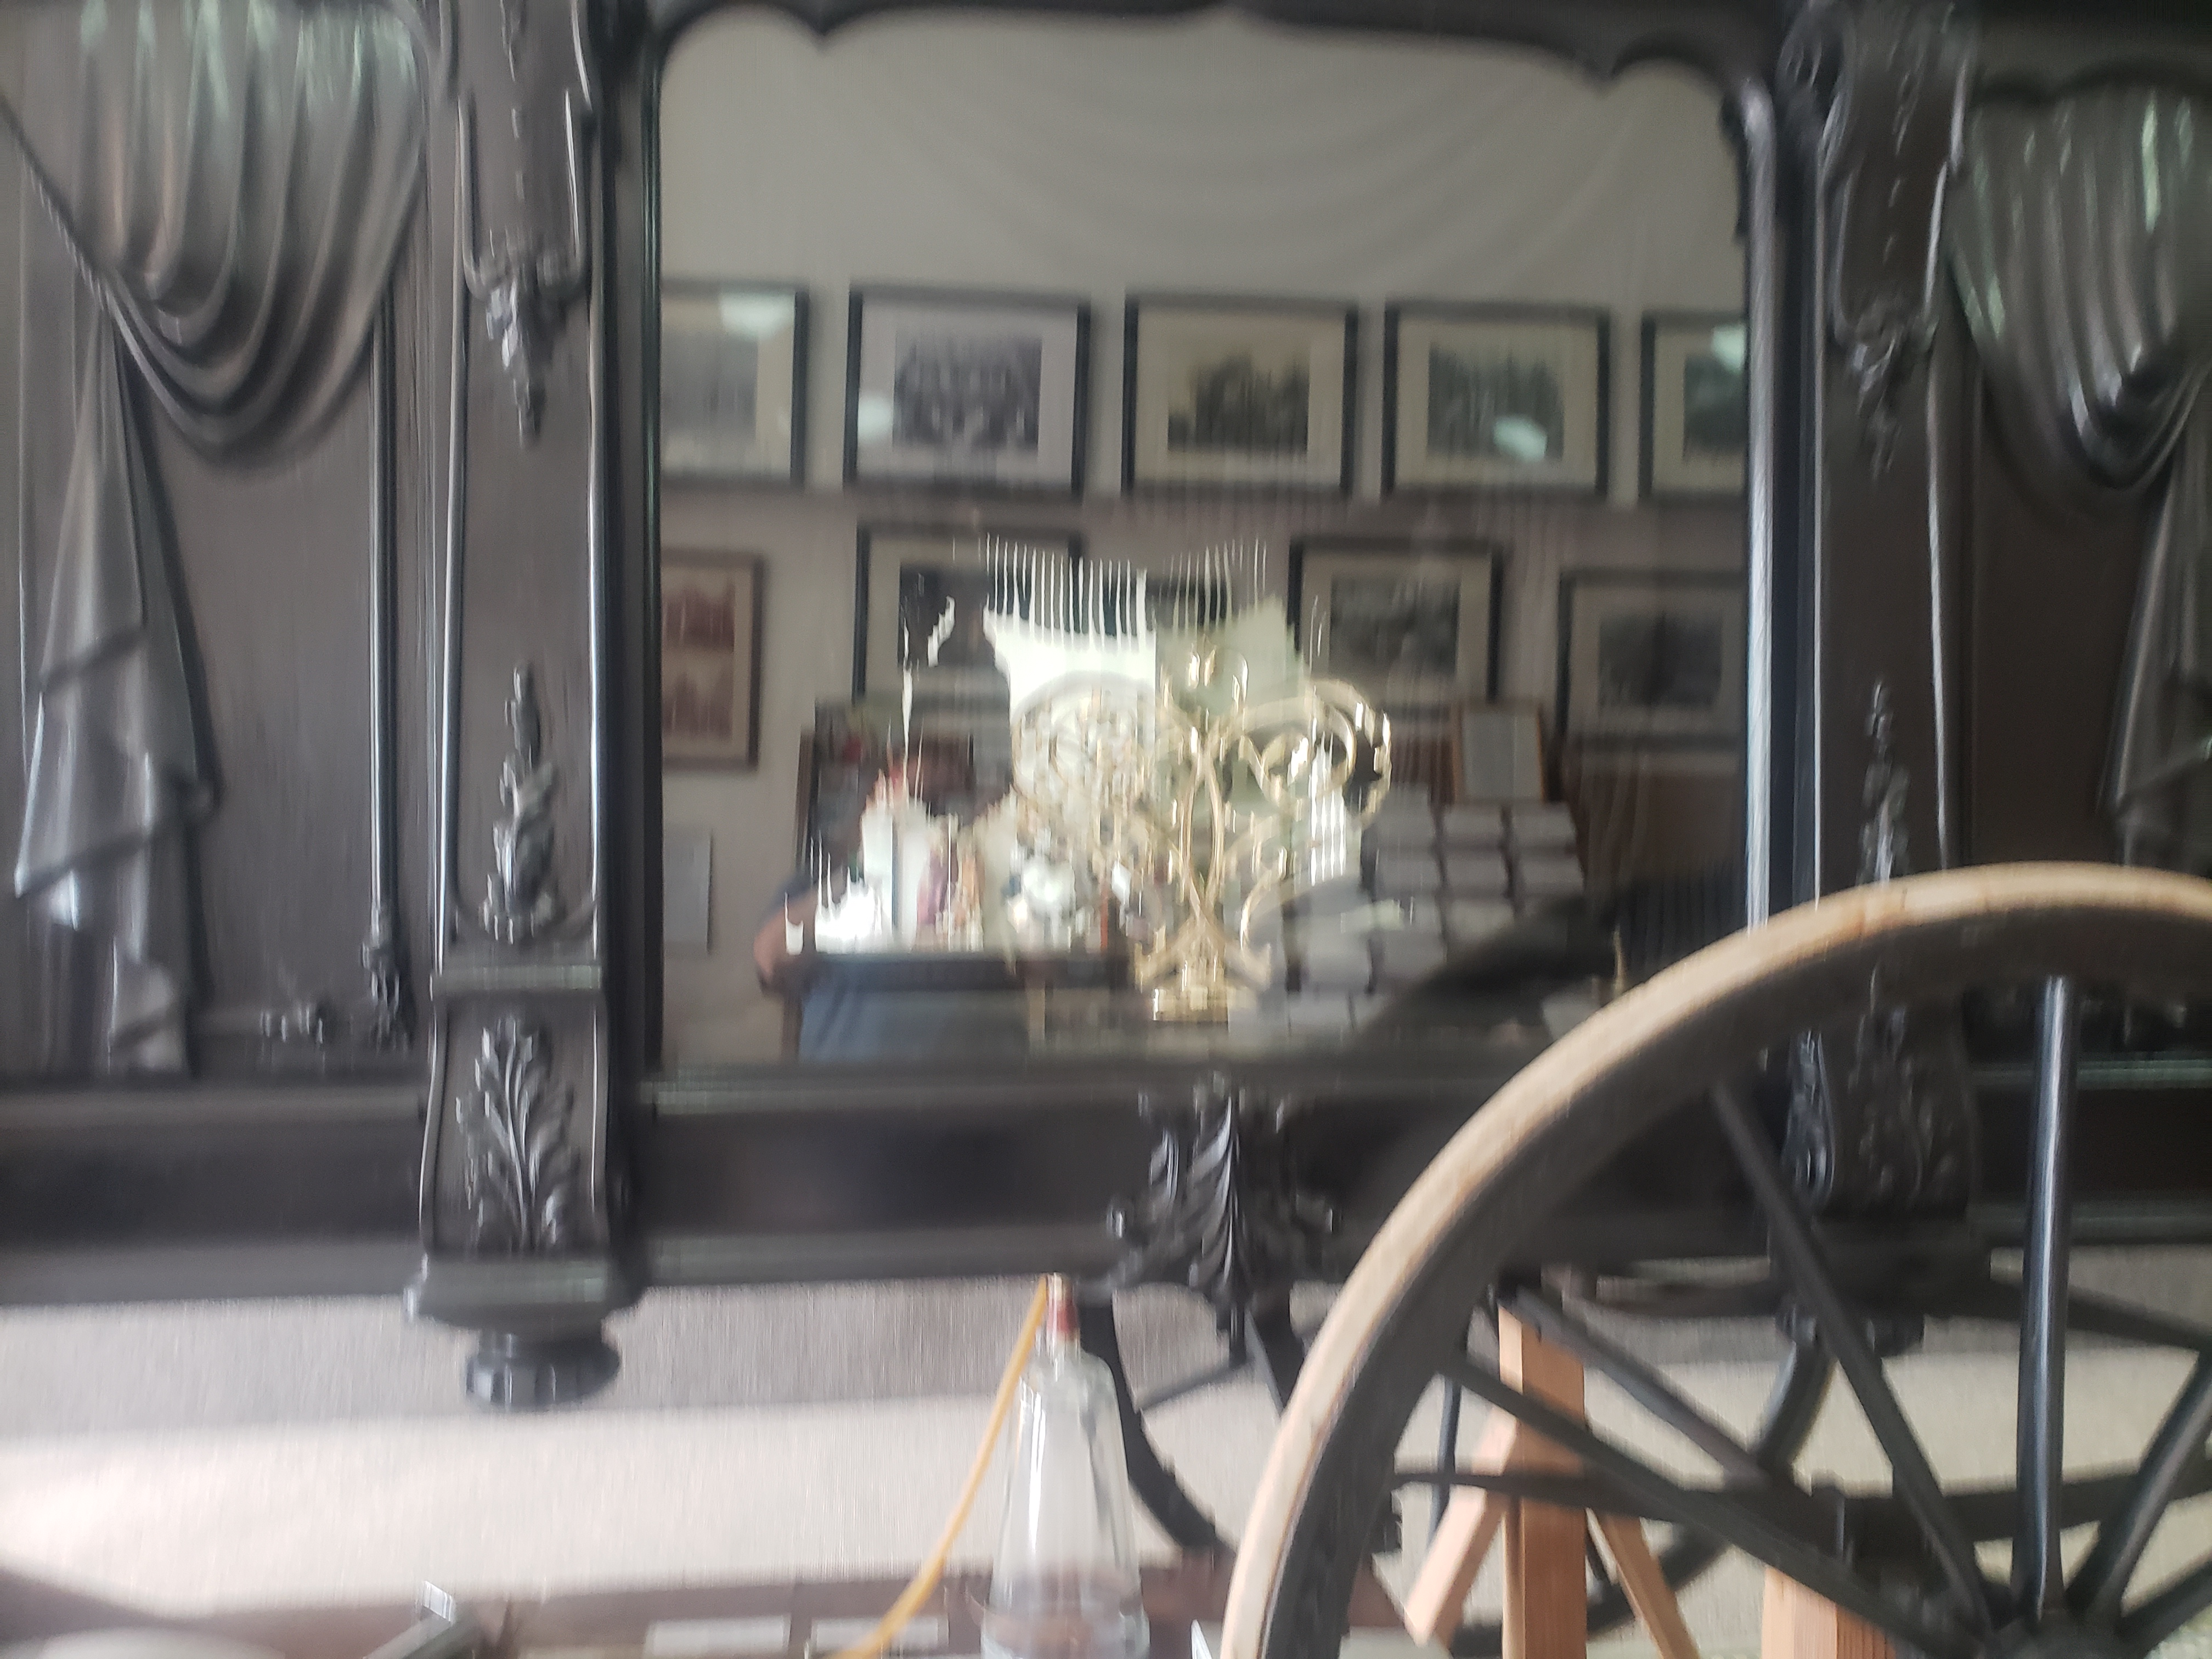 Horse-drawn Hearse. Glass side to view the inside